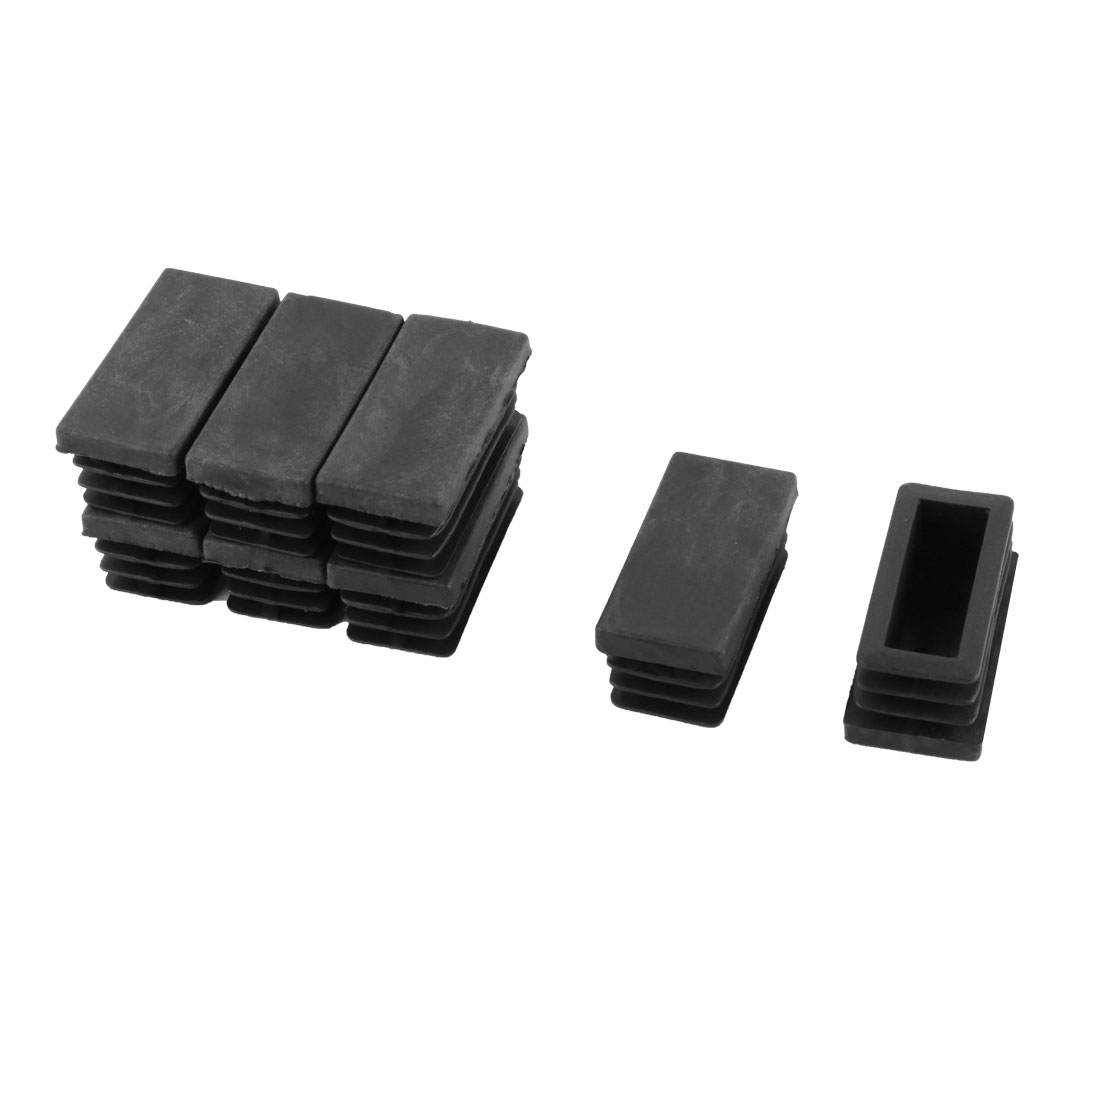 8 Pieces Black Plastic Rectangular Blanking End Caps Tubing Tube Inserts 20mm x 40mm